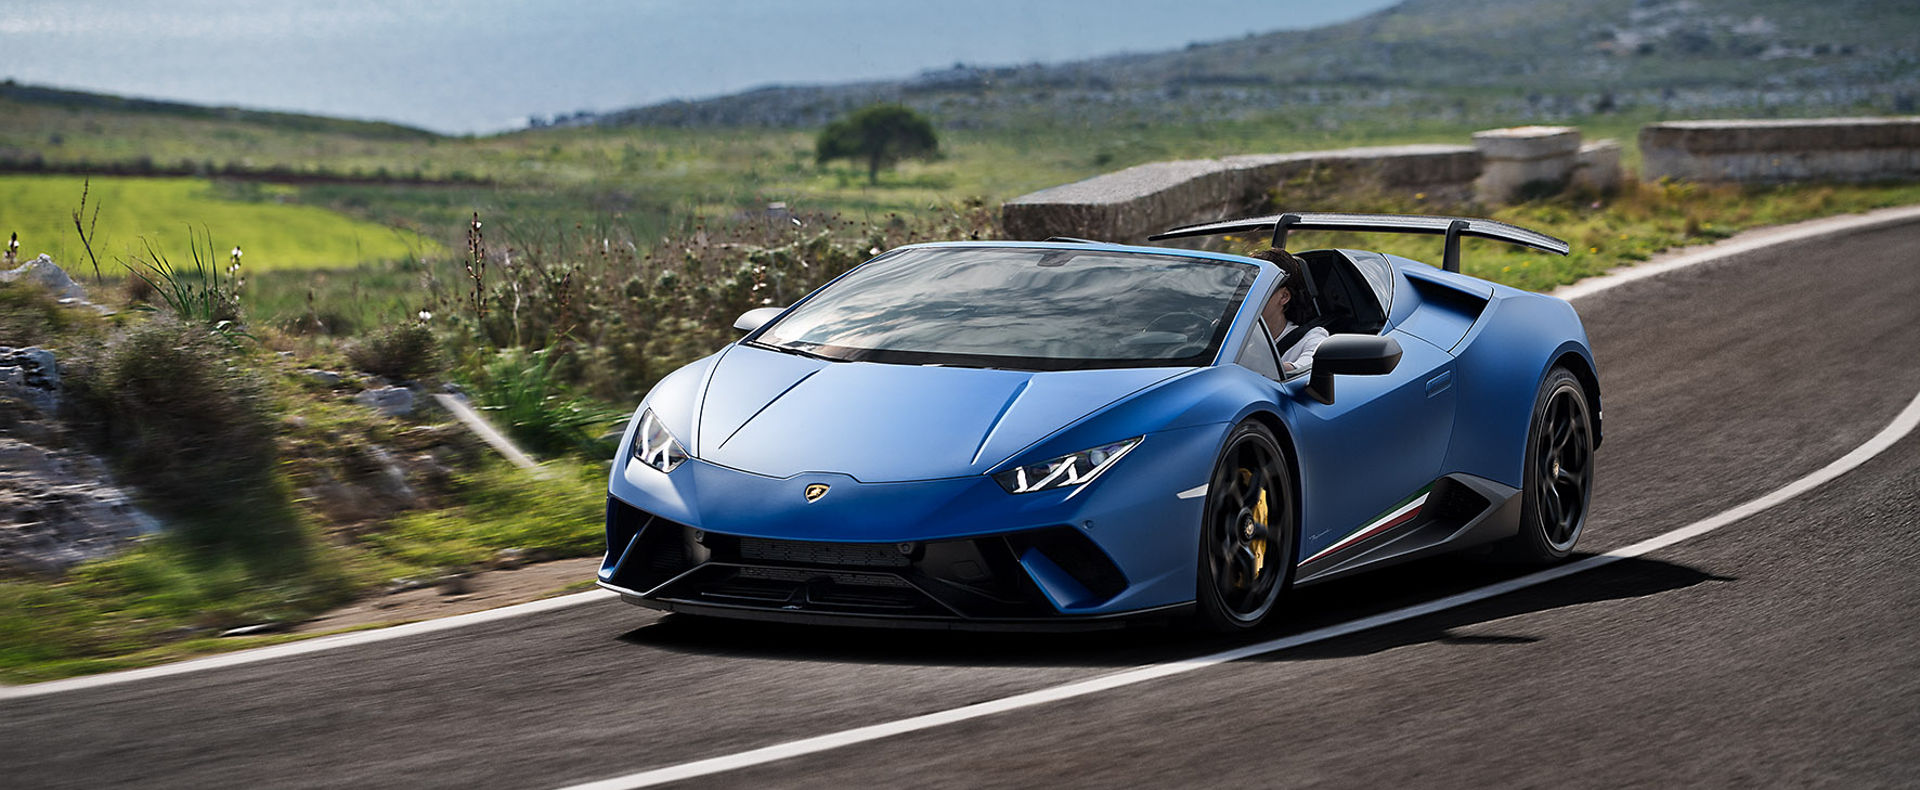 motorcars of atlanta Huracan Performante Spyder.jpg